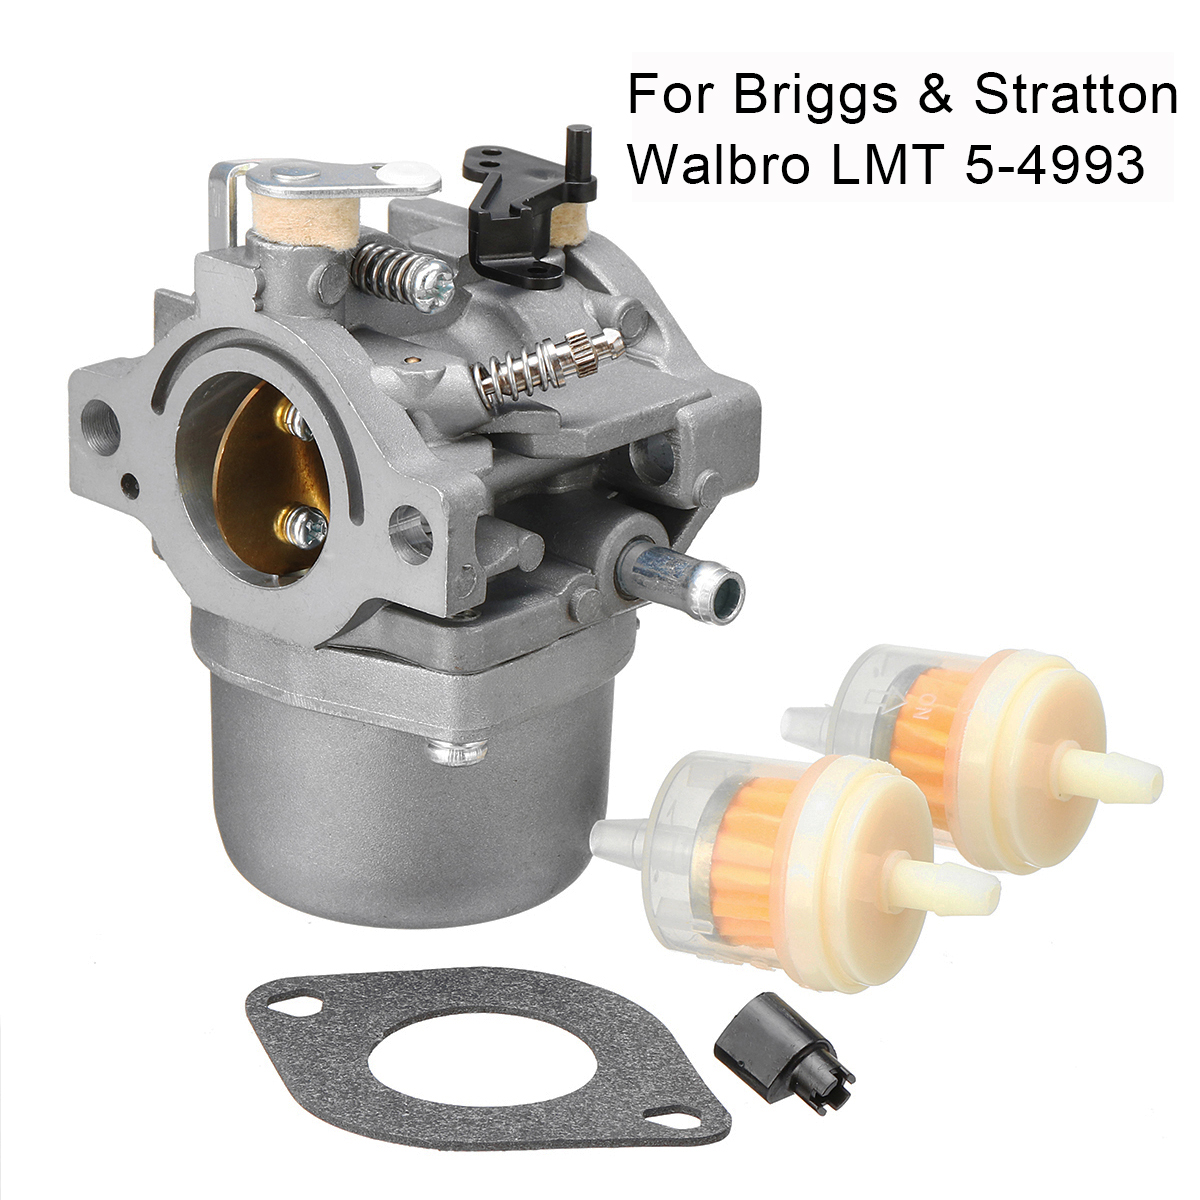 Carburetor for Briggs & Stratton Walbro LMT 5-4993 with Mounting Gasket Filter Auto Fuel Supply System Parts Carburetor все цены